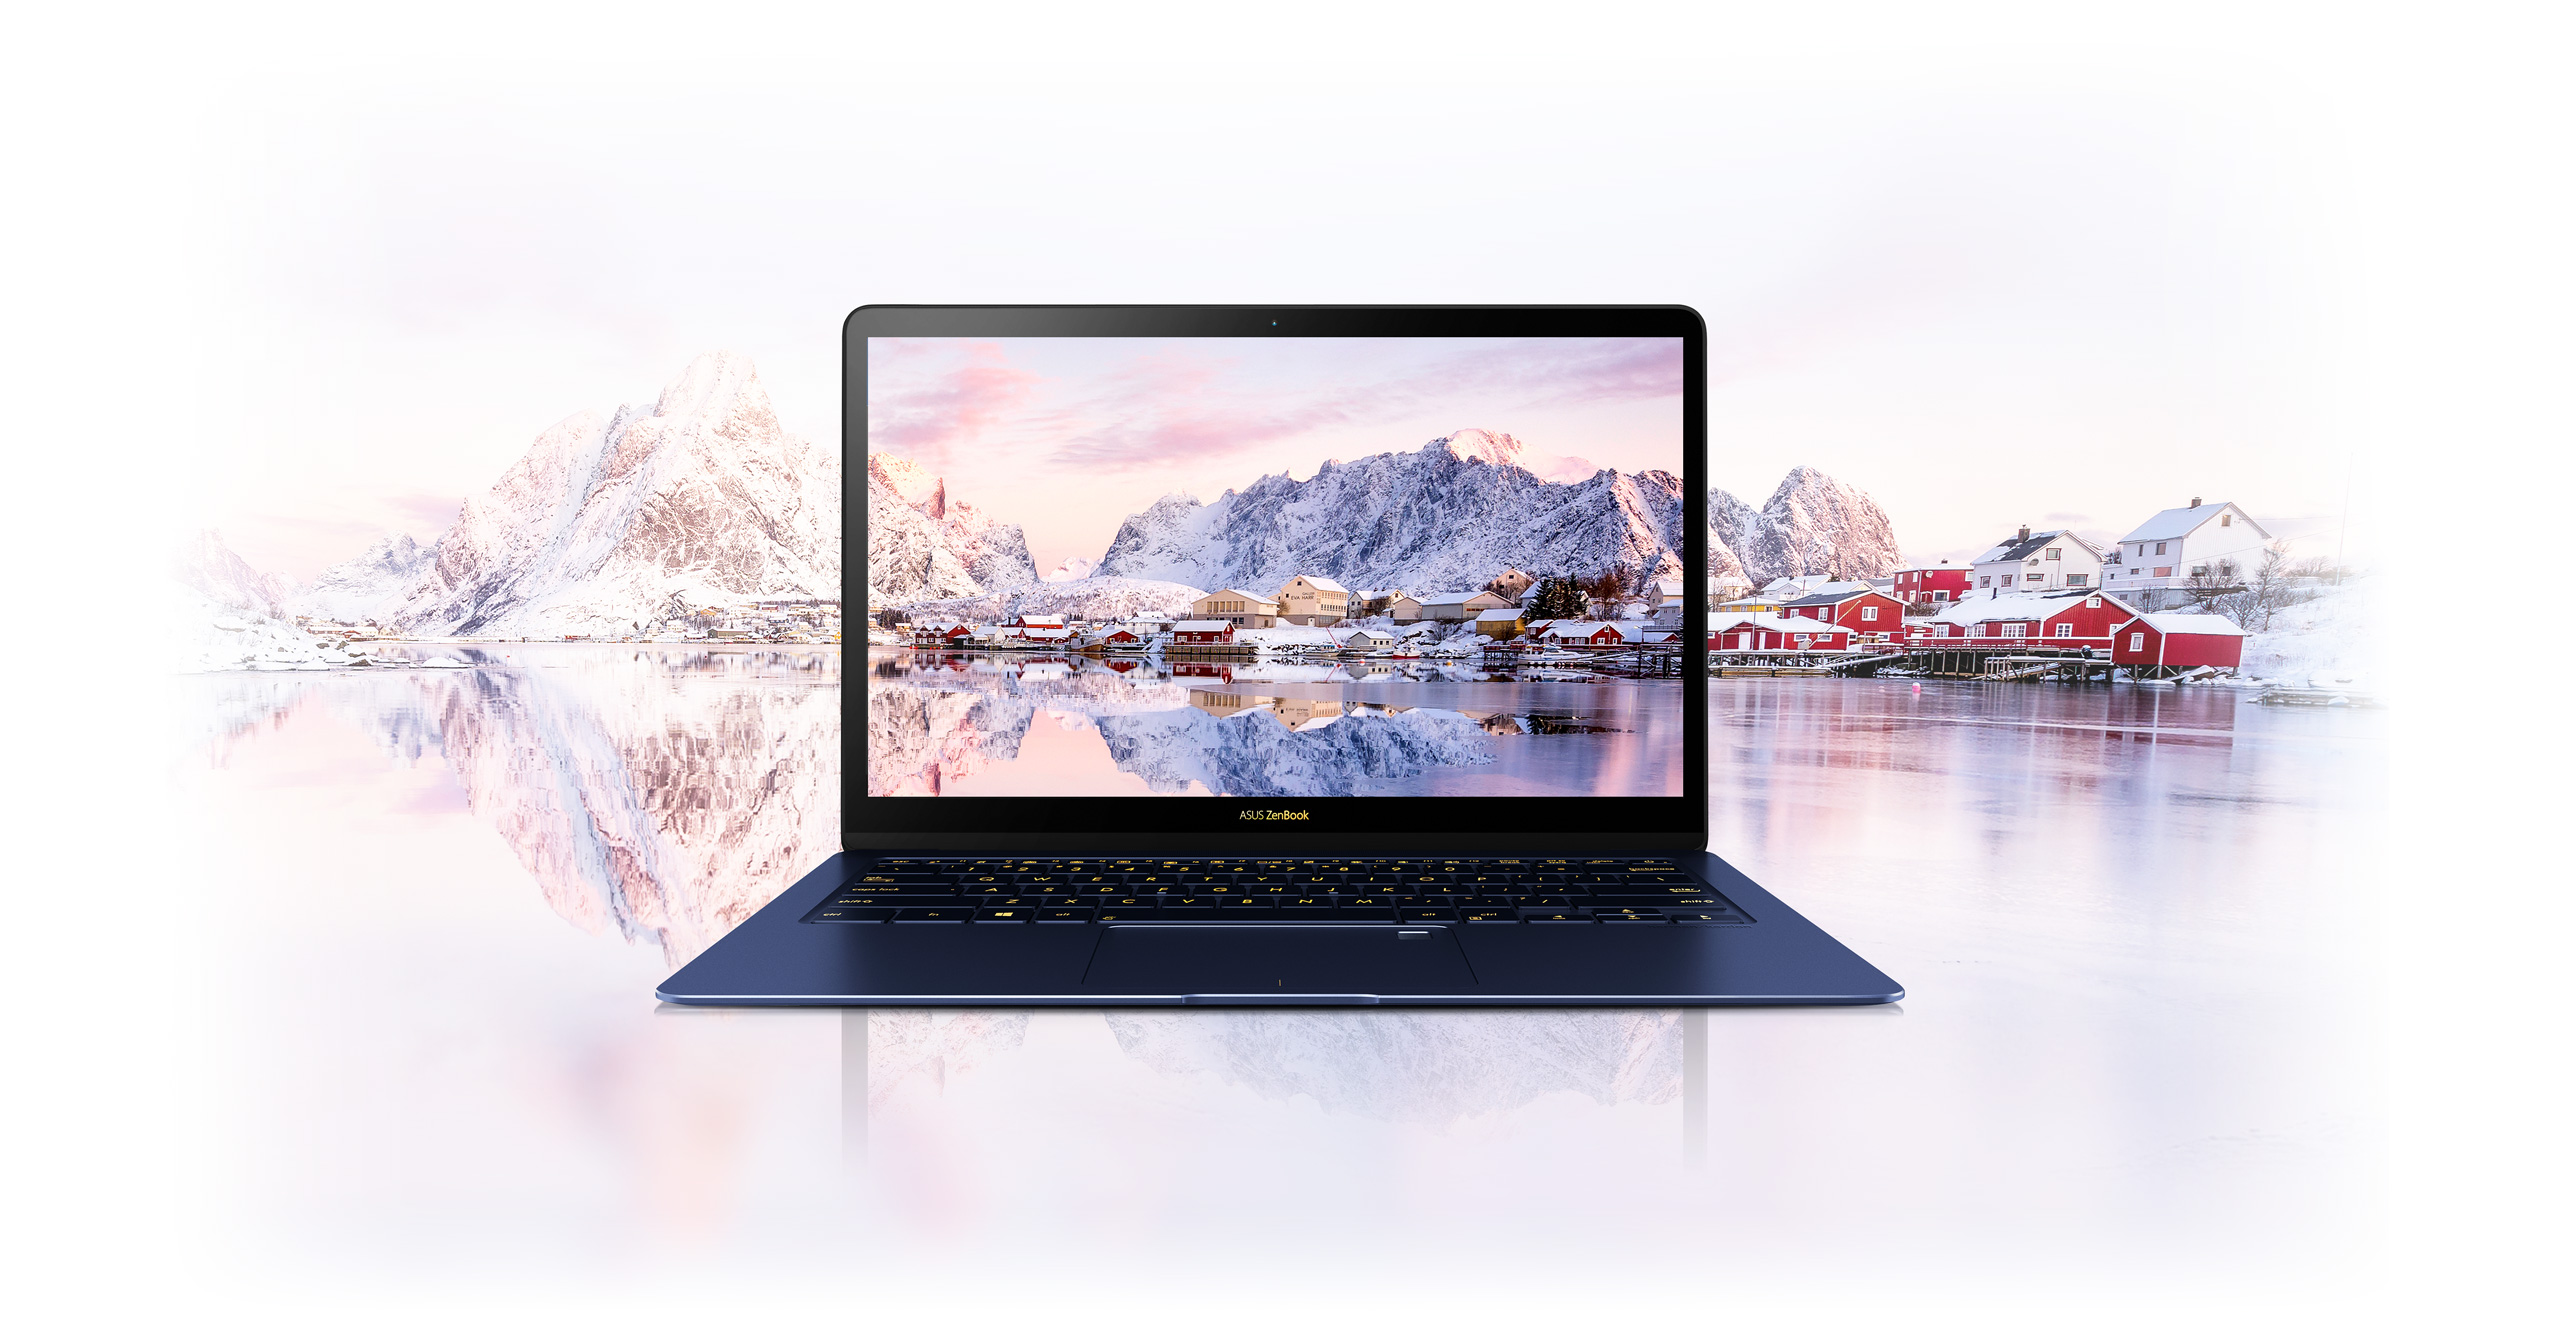 https://dlcdnimgs.asus.com/websites/global/products/Ojs4UzK7AnKYHCAw/v2/features/images/large/1x/screen.jpg